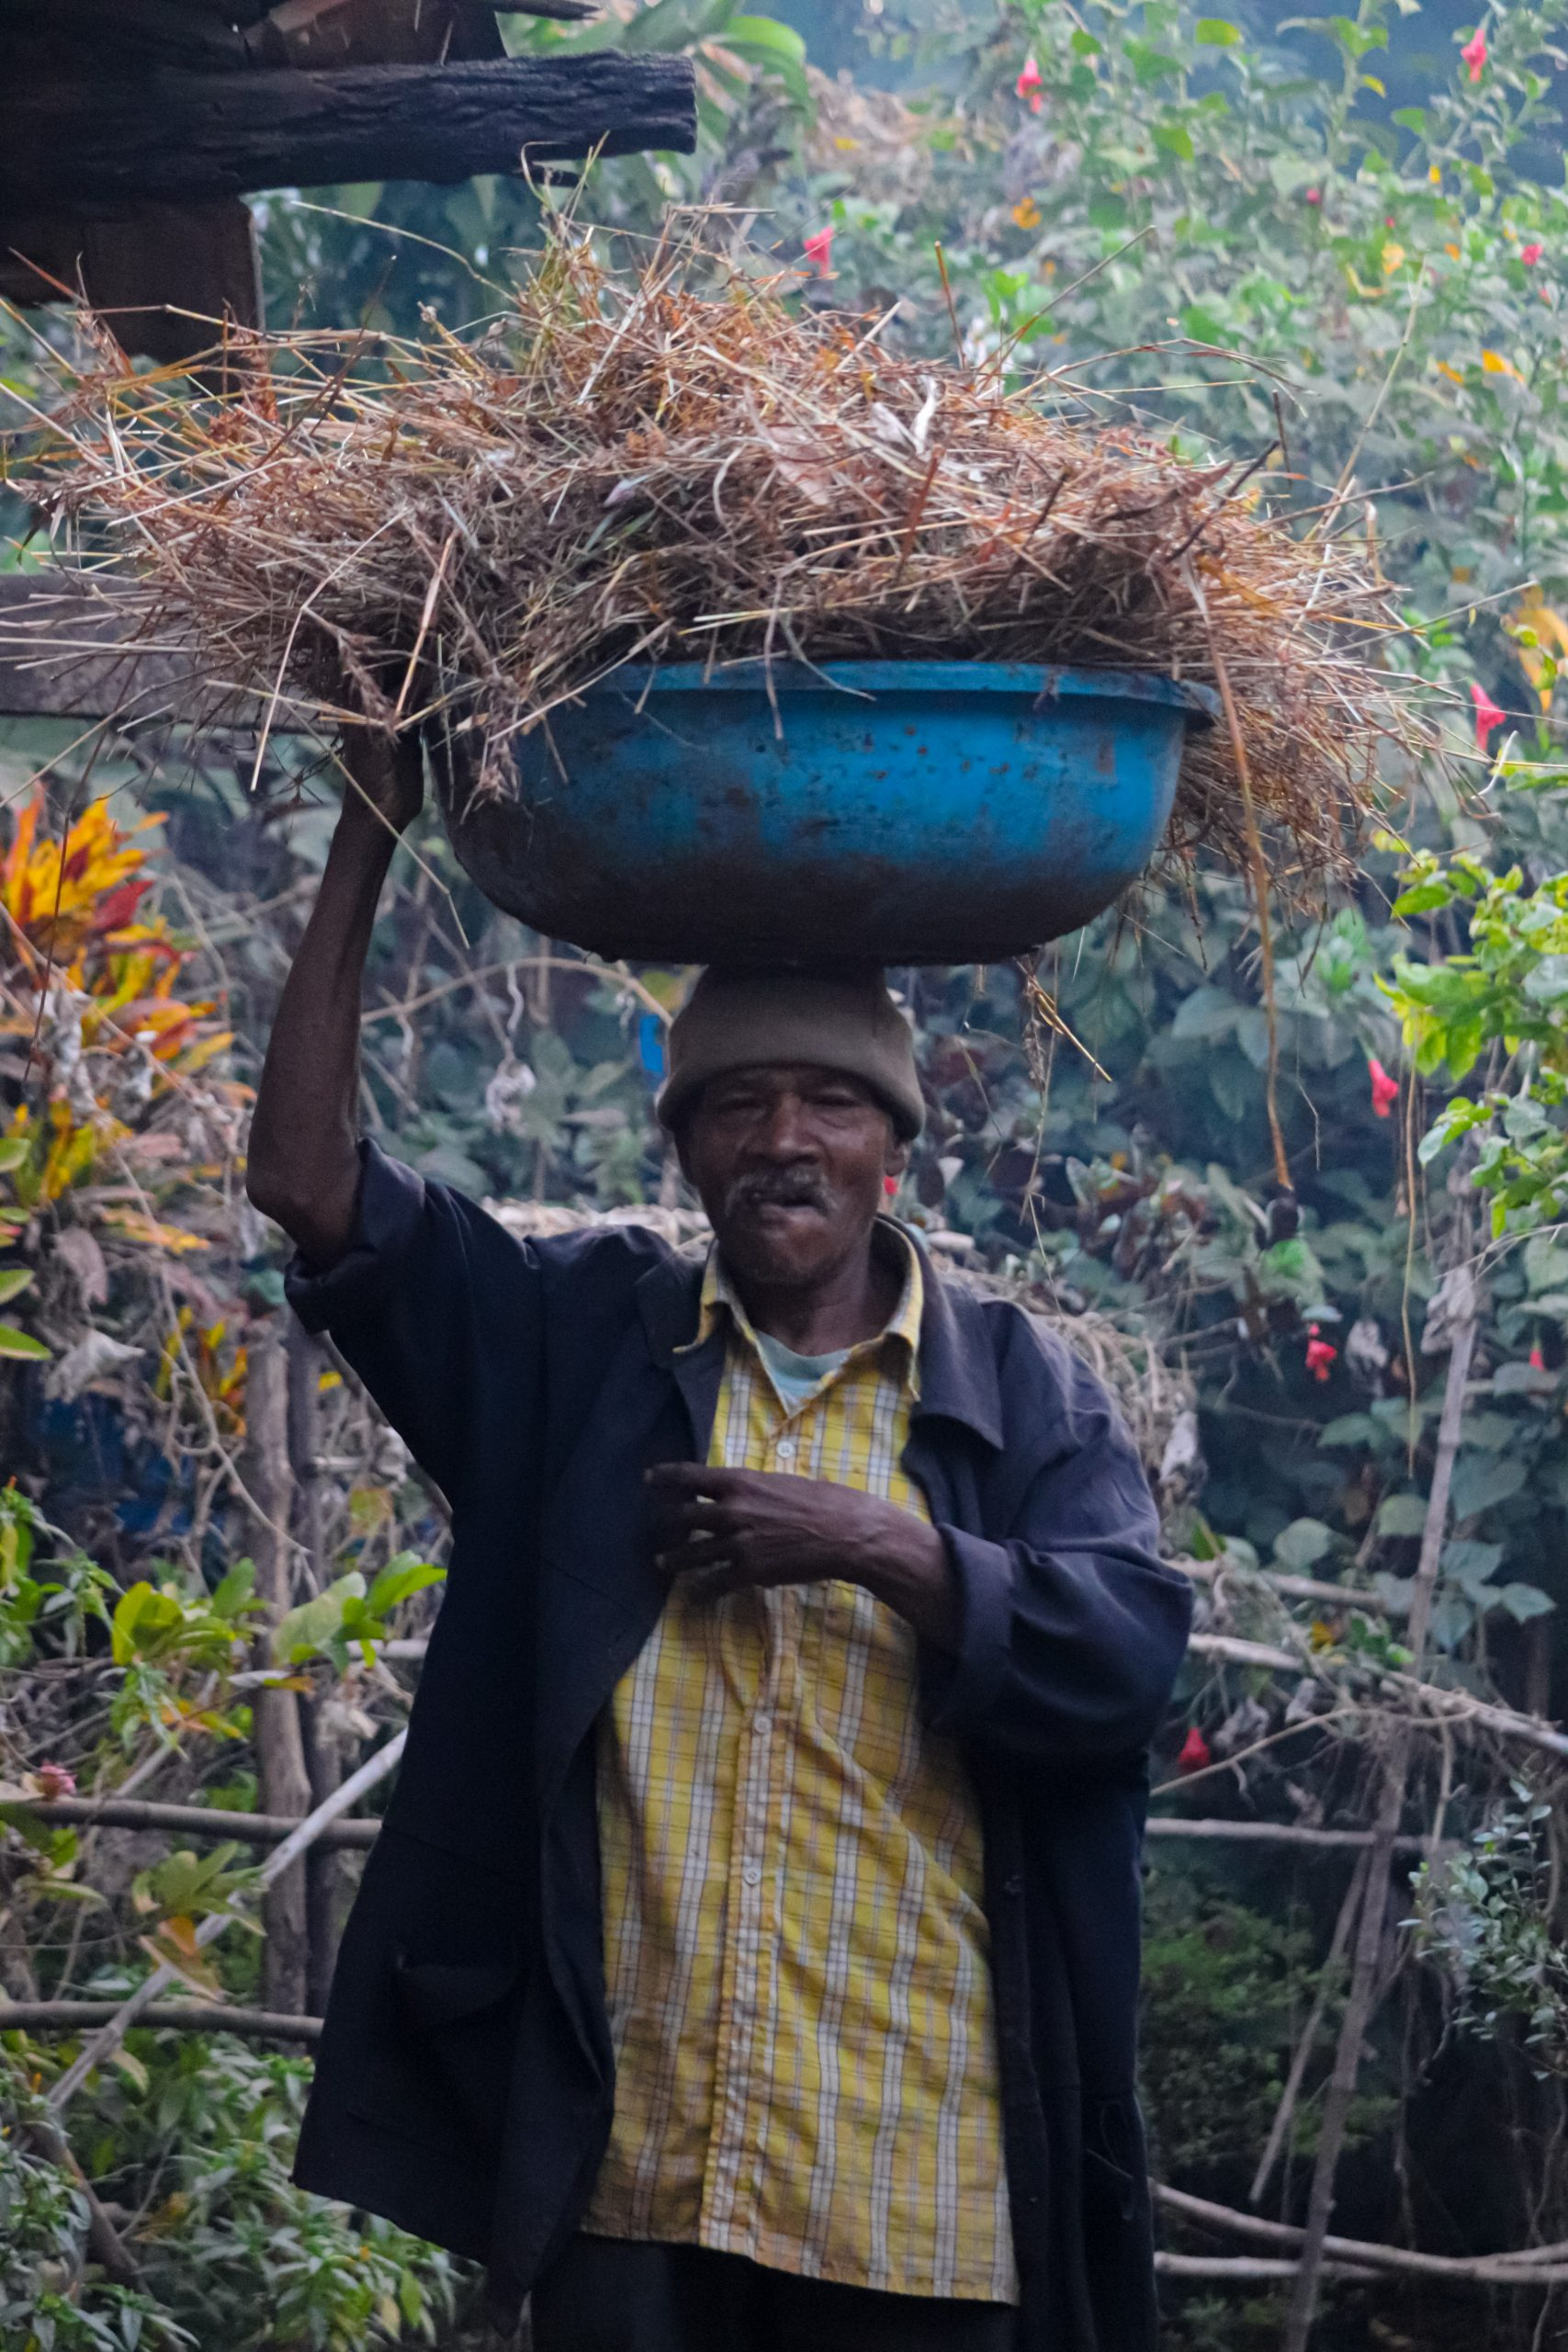 A village man carrying waste on his head